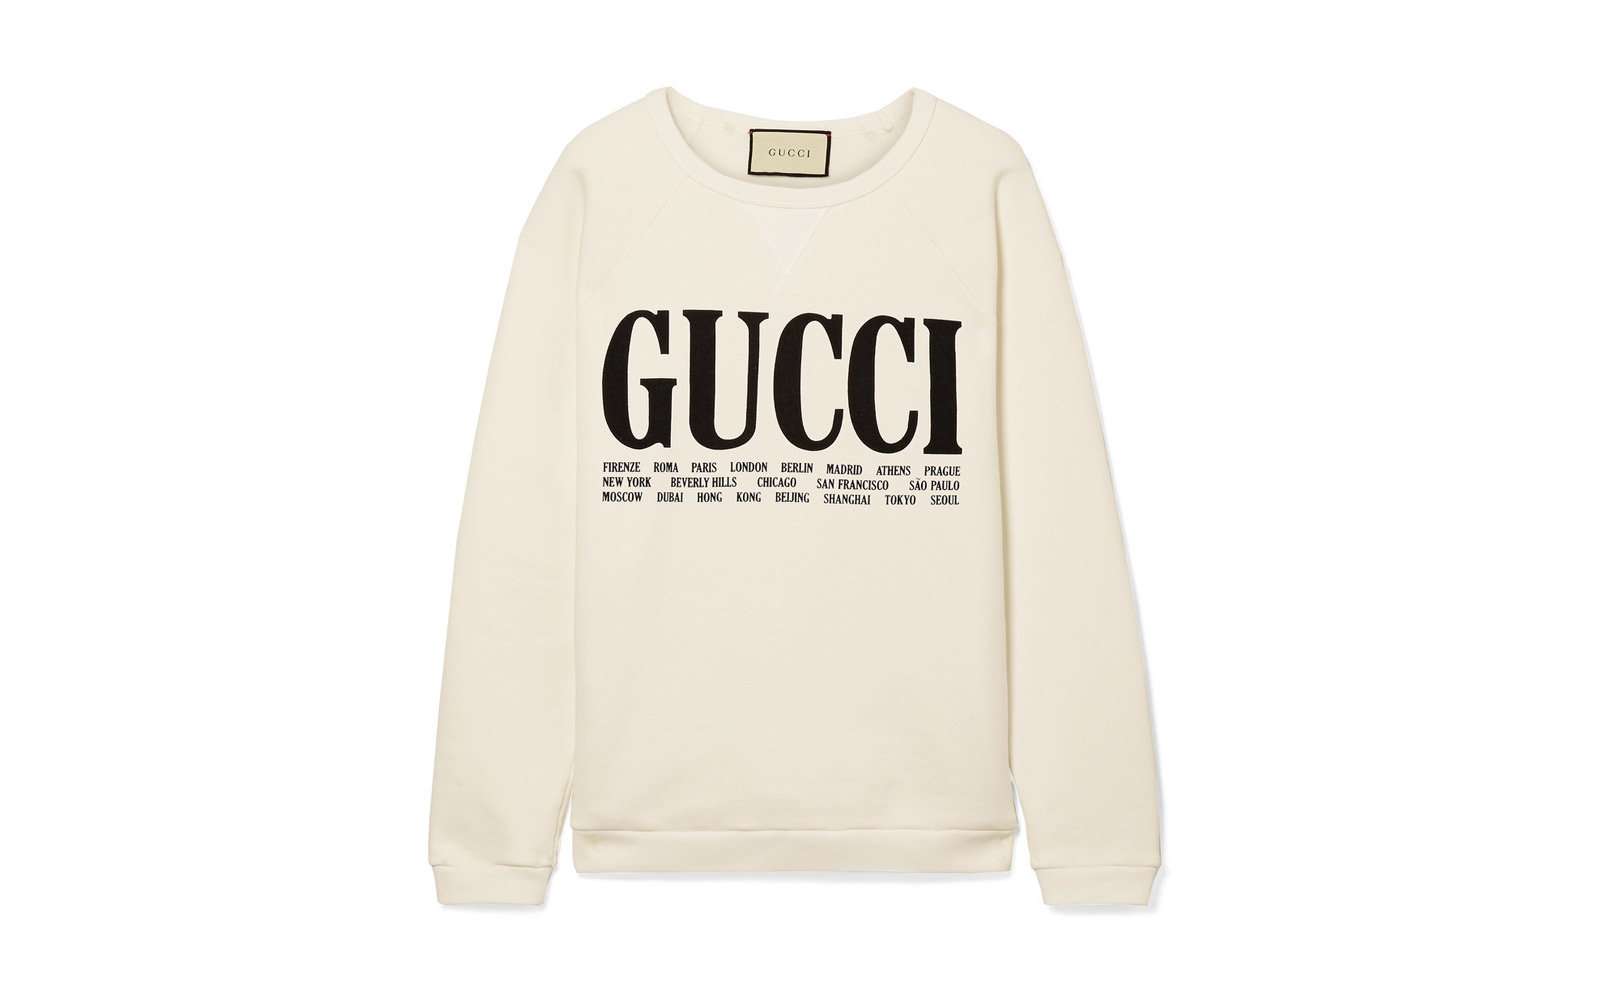 gucci crewneck sweatshirts womens